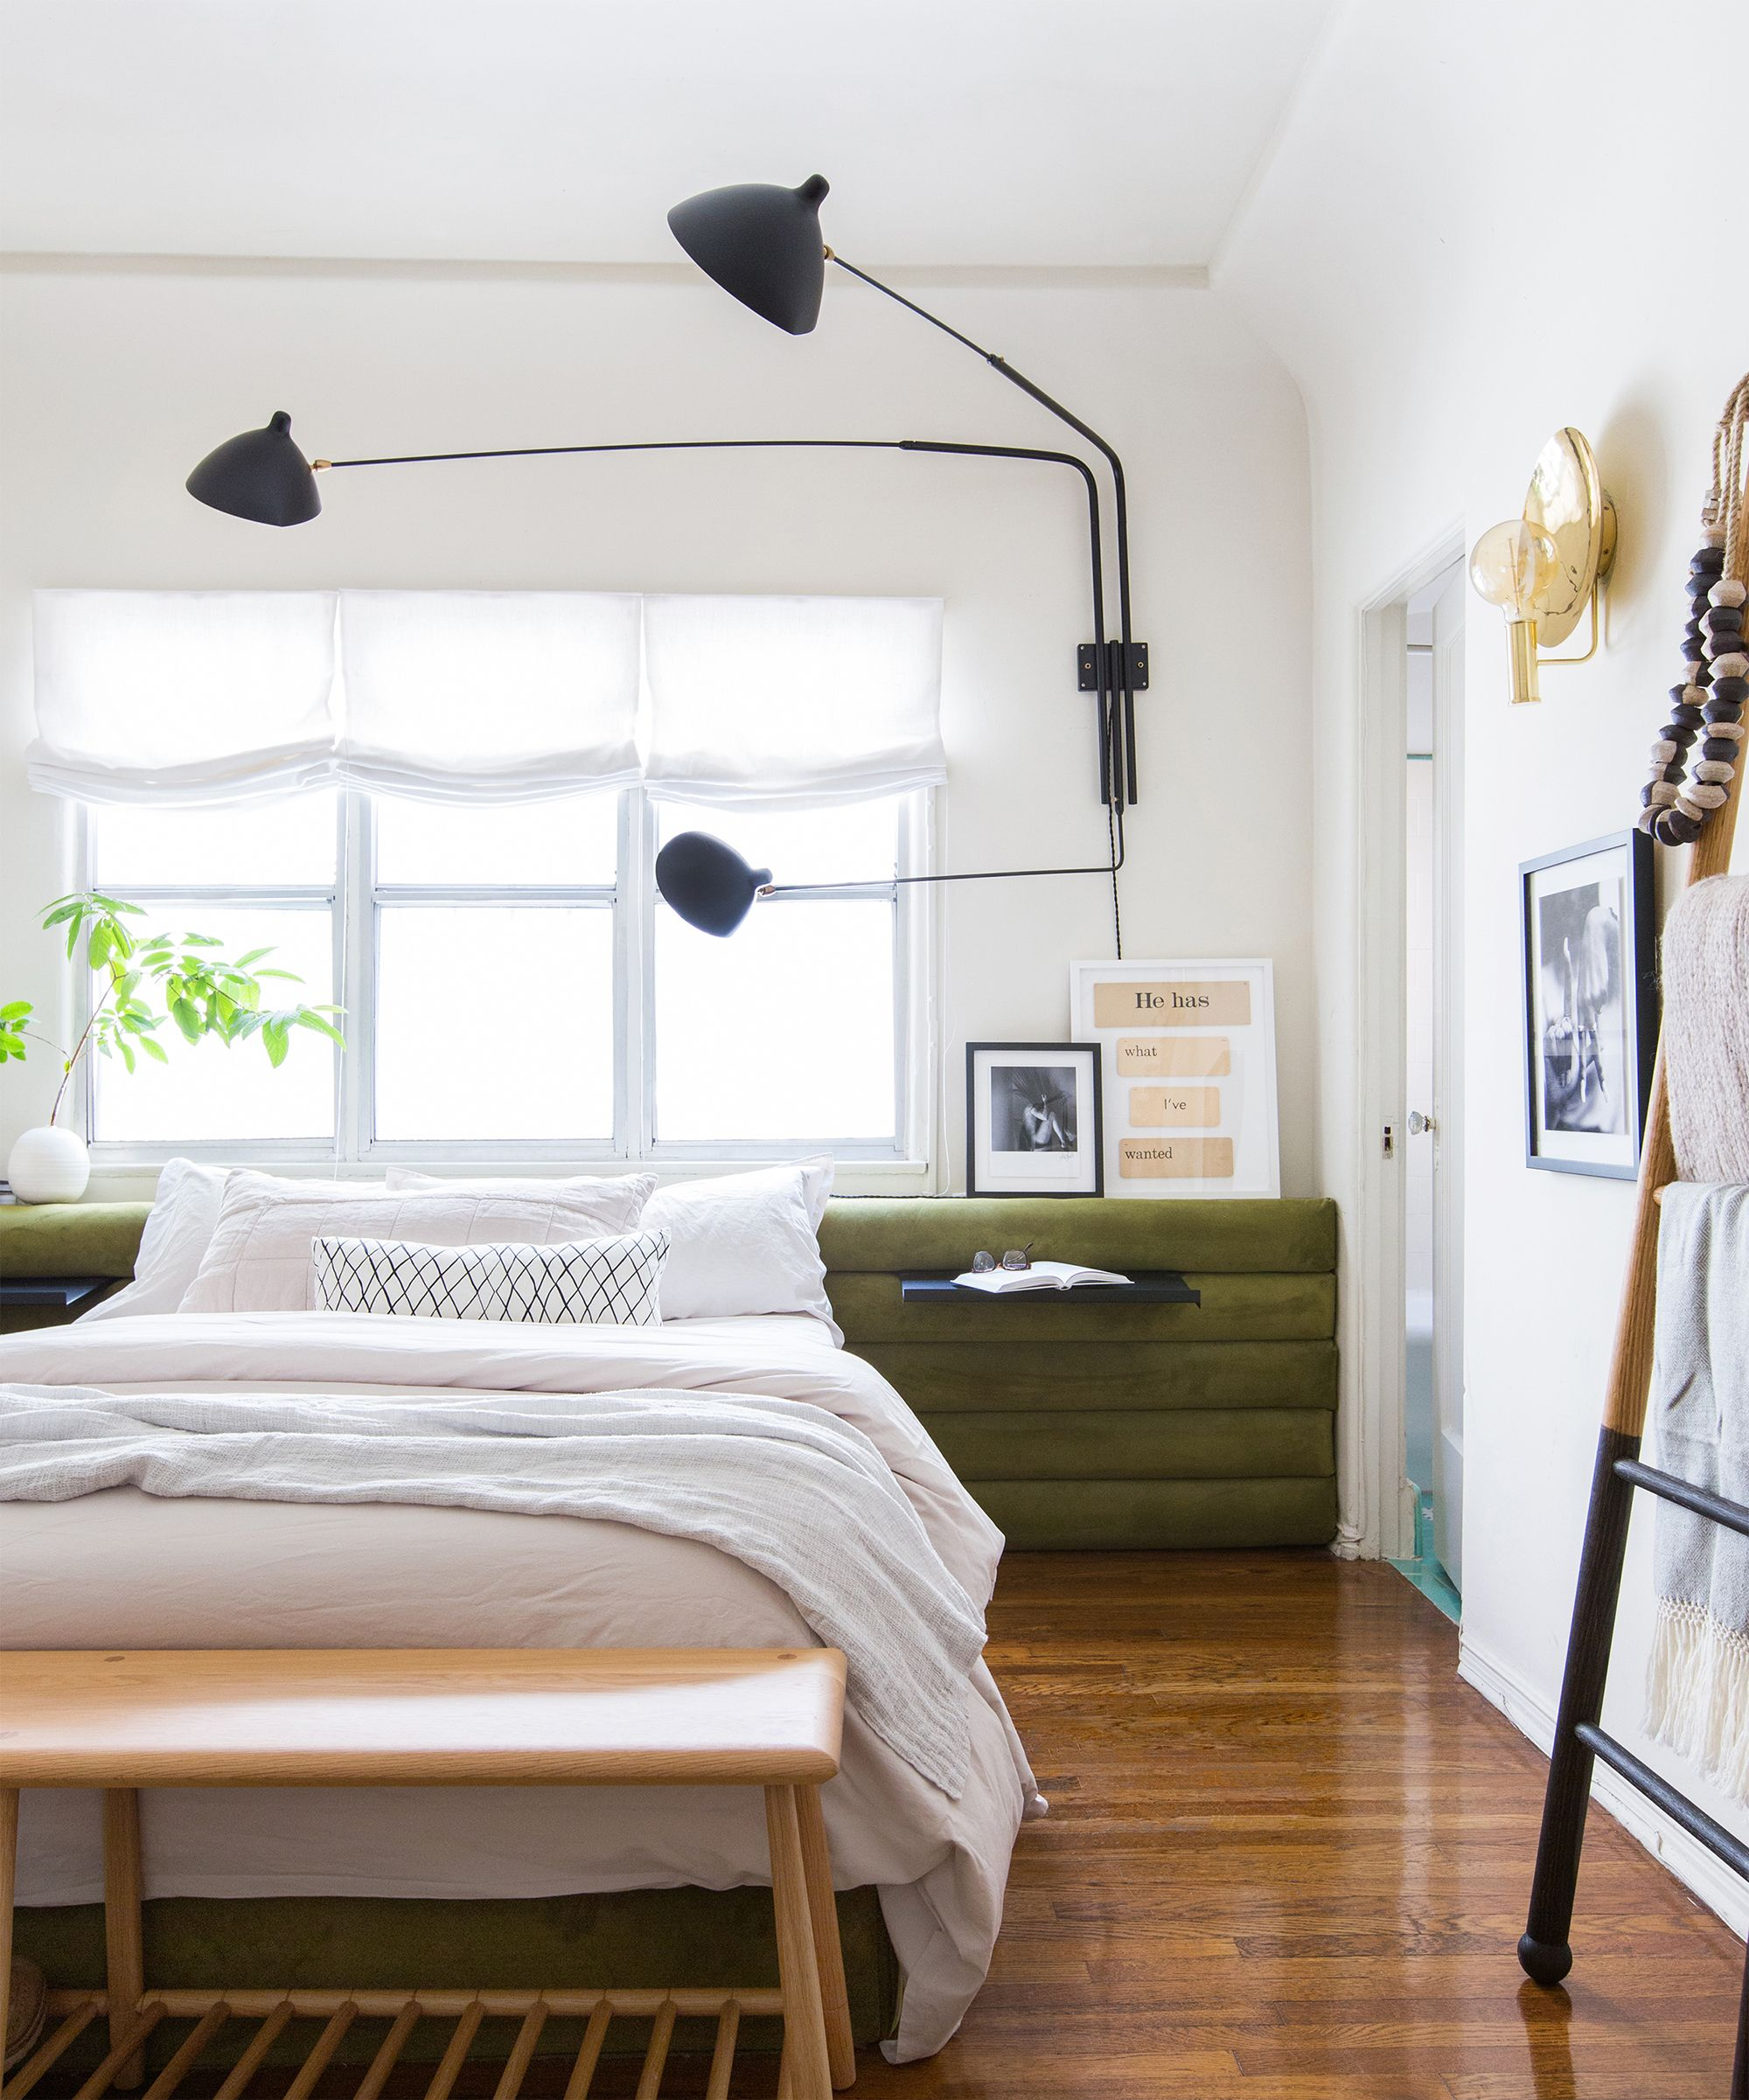 50 Bedroom Ideas You Haven't Seen A Million Times Before